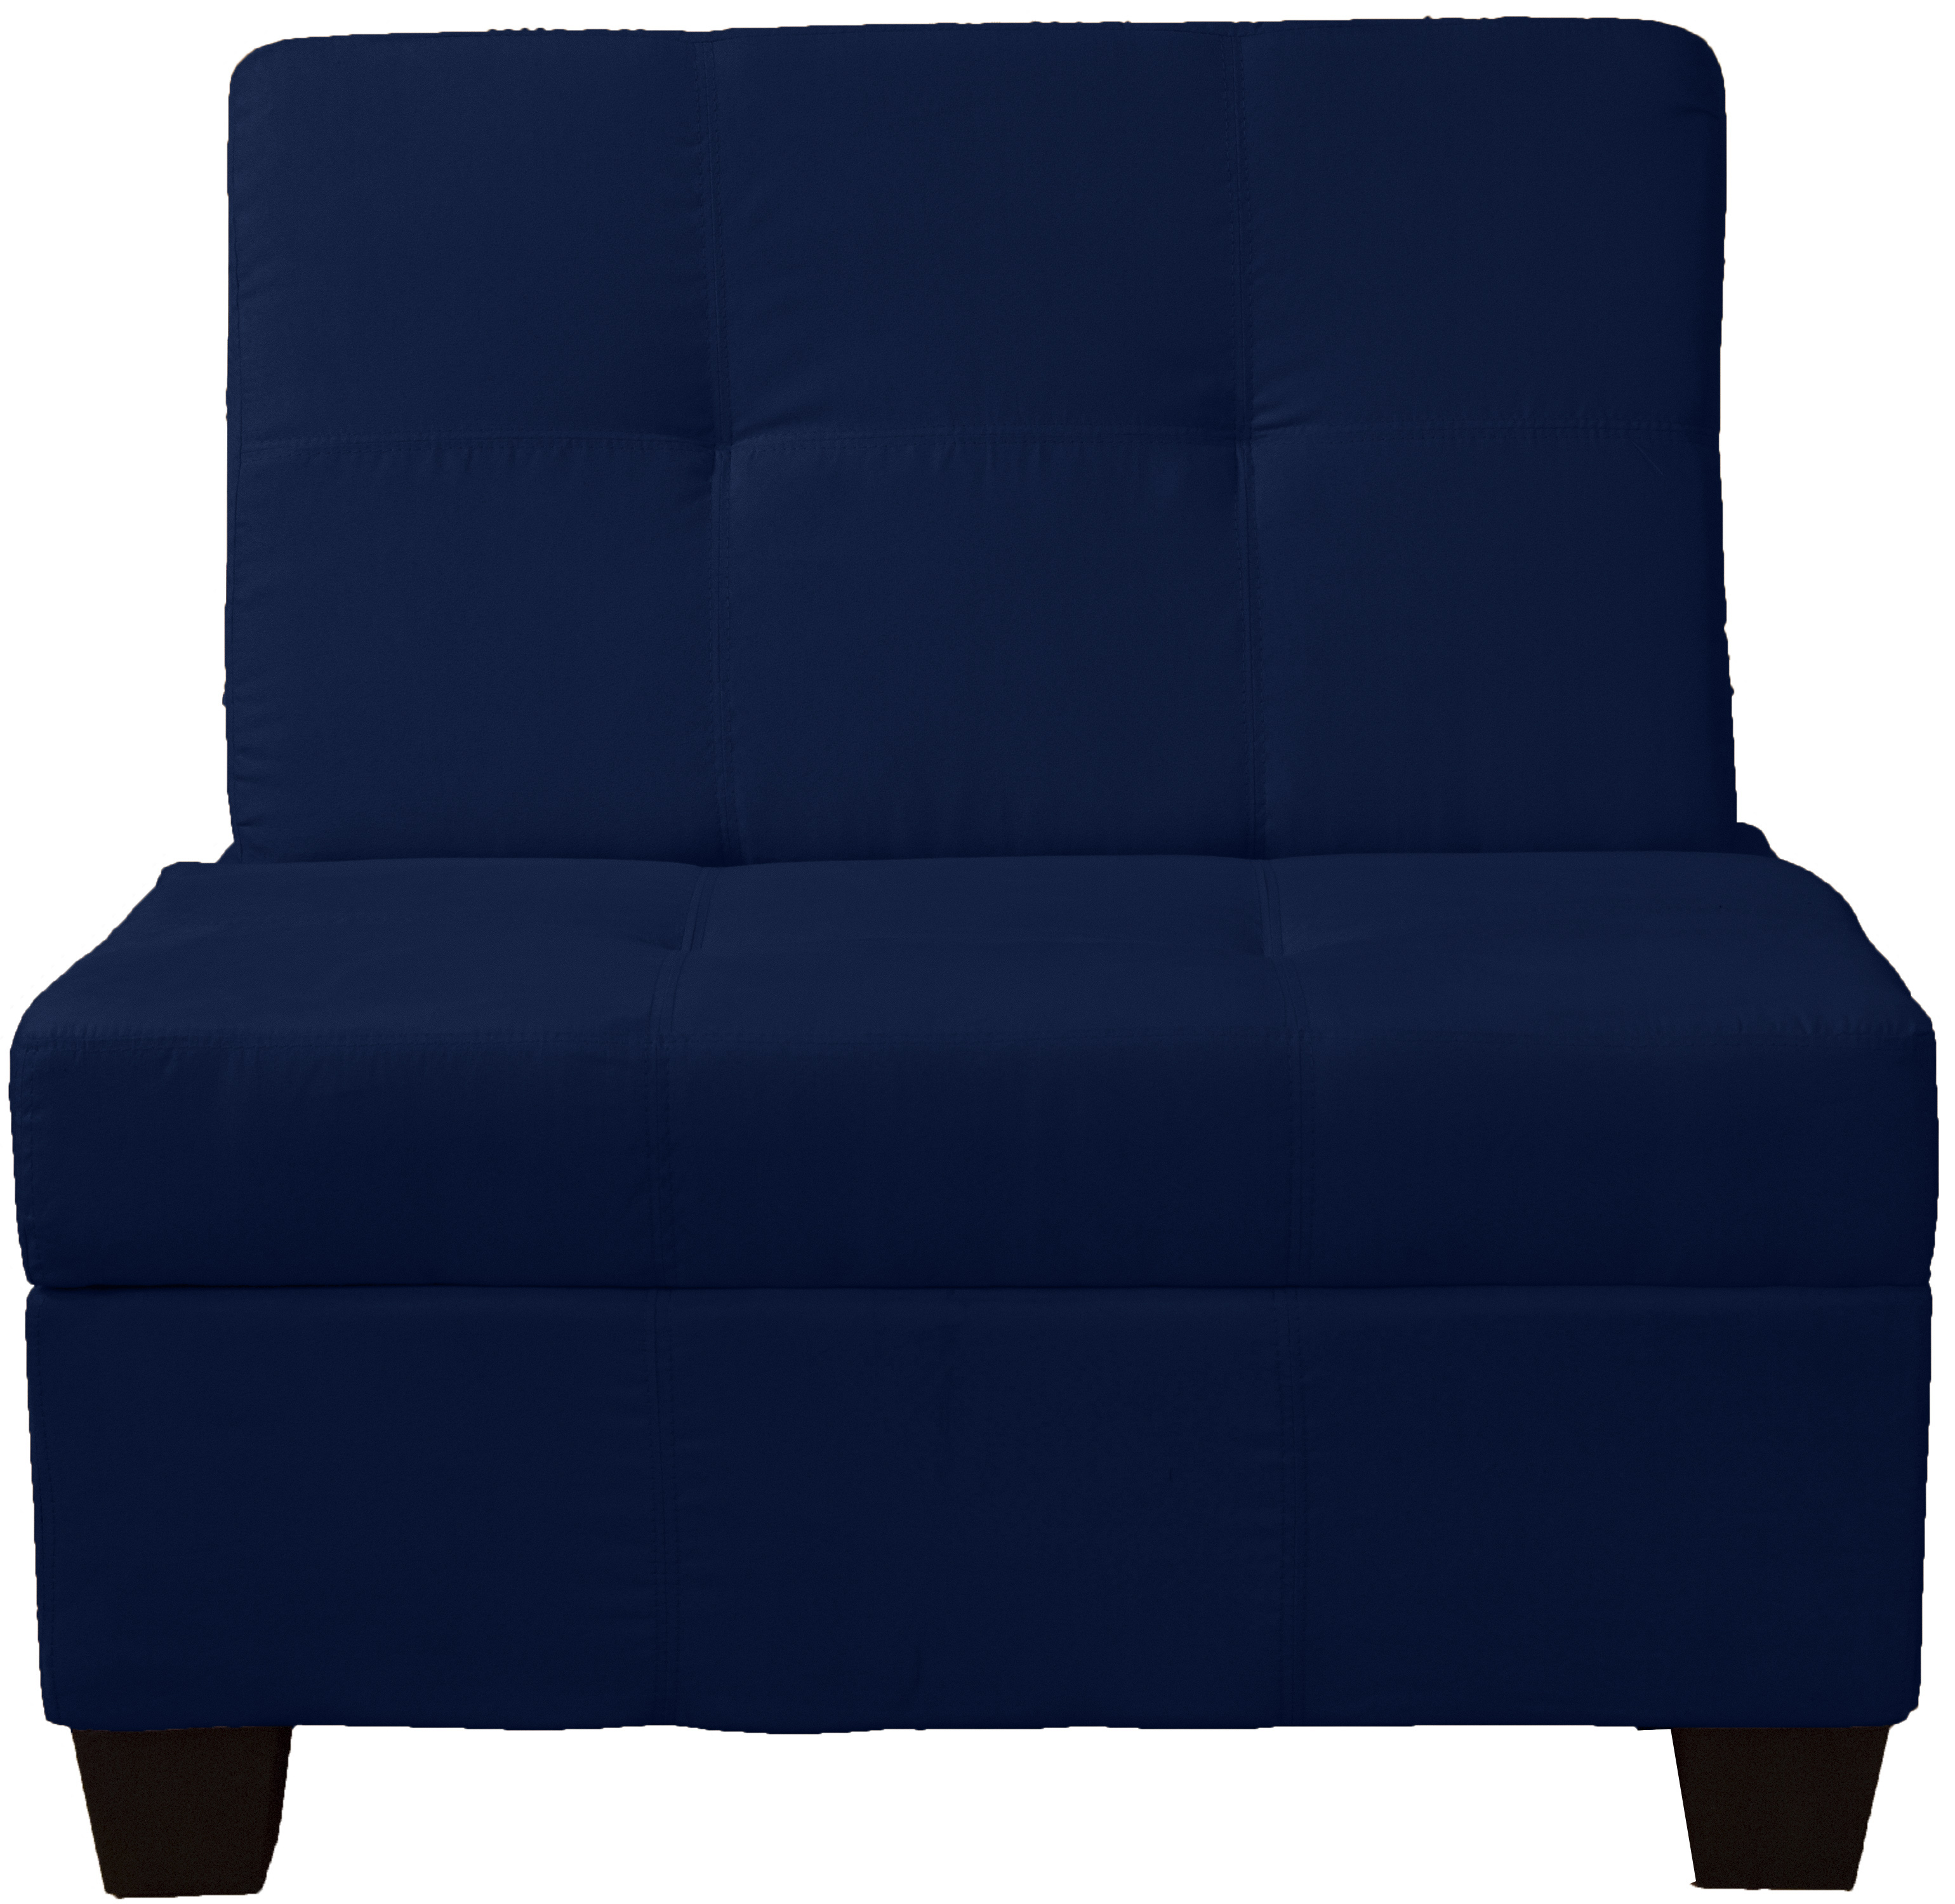 Pizzazz Upholstered Tufted Padded Hinged Storage Ottoman Bench 36 Inch Size Suede Dark Blue